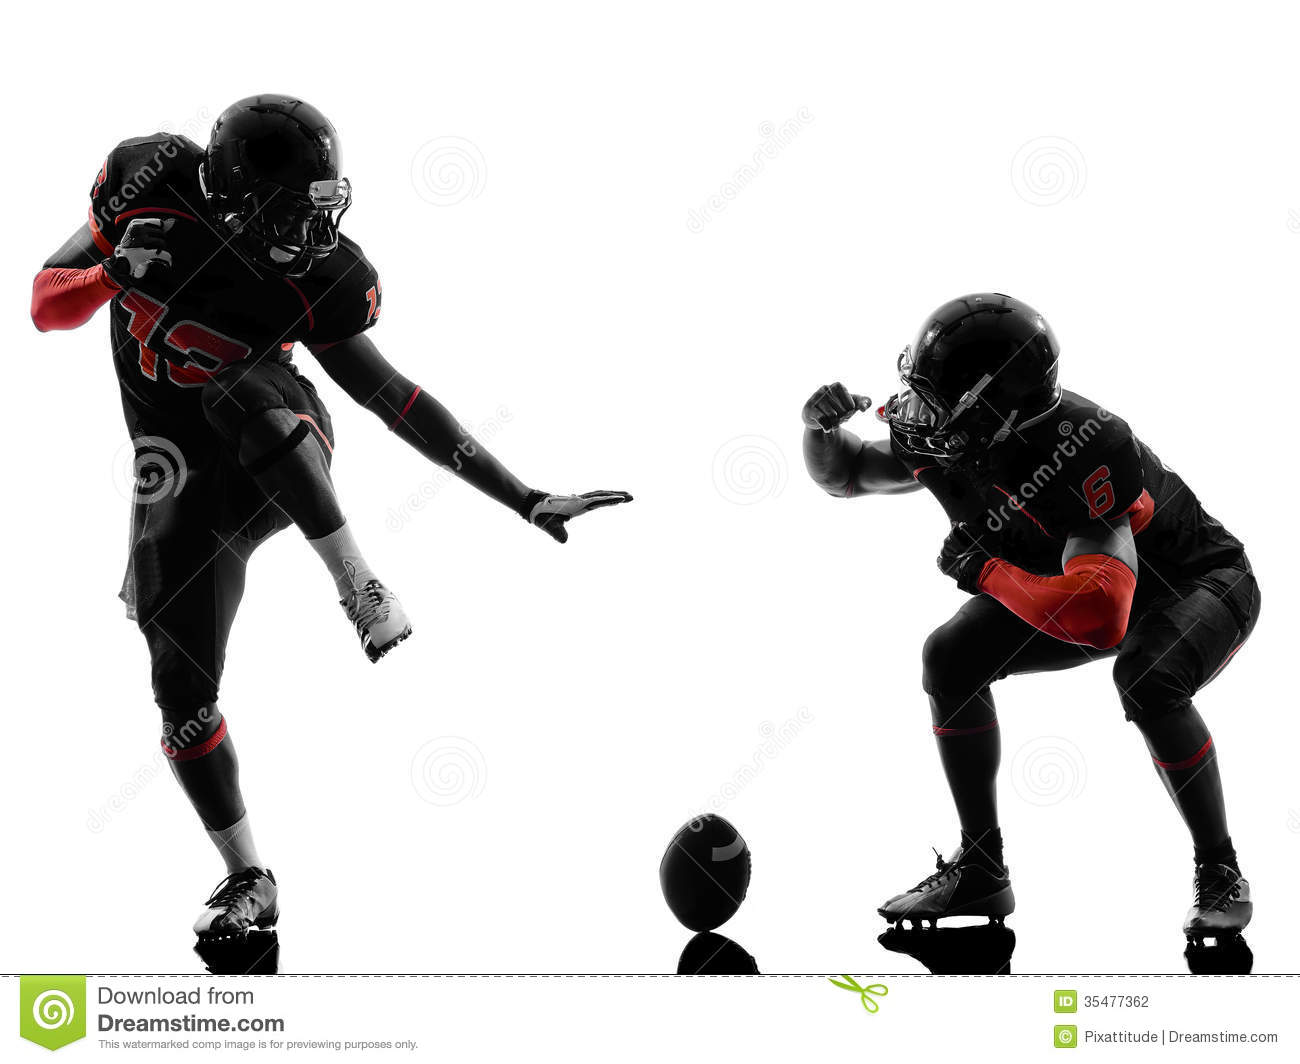 Nfl Football Players Wallpapers Clipart Panda Free Clipart: Two American Football Players Touchdown Celebration